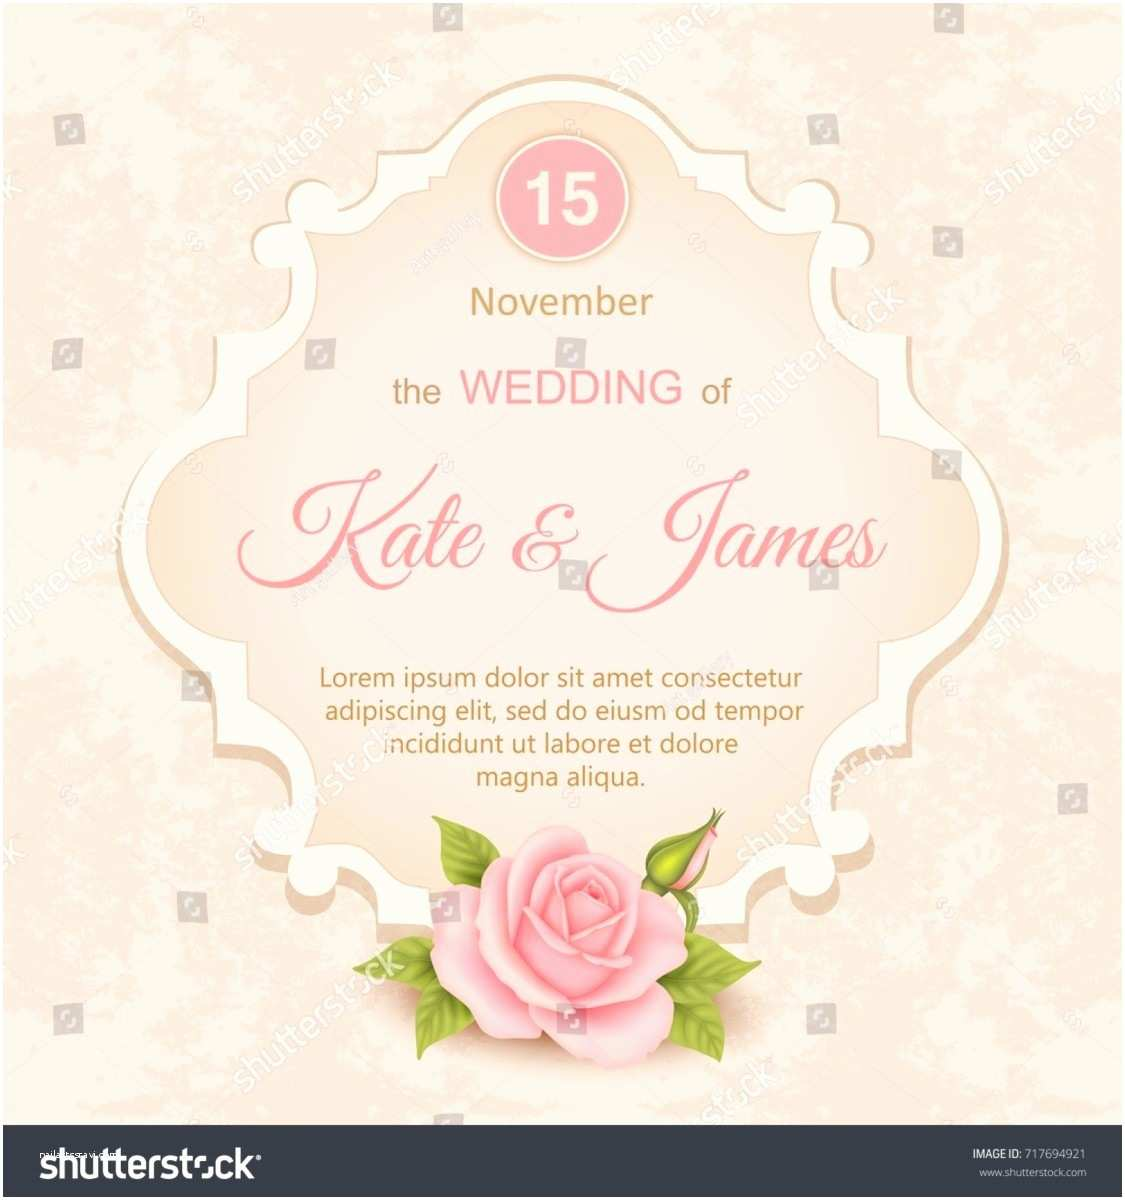 Free Wedding Invitation Samples by Mail Famous Free Wedding Invitation Samples by Mail Motif